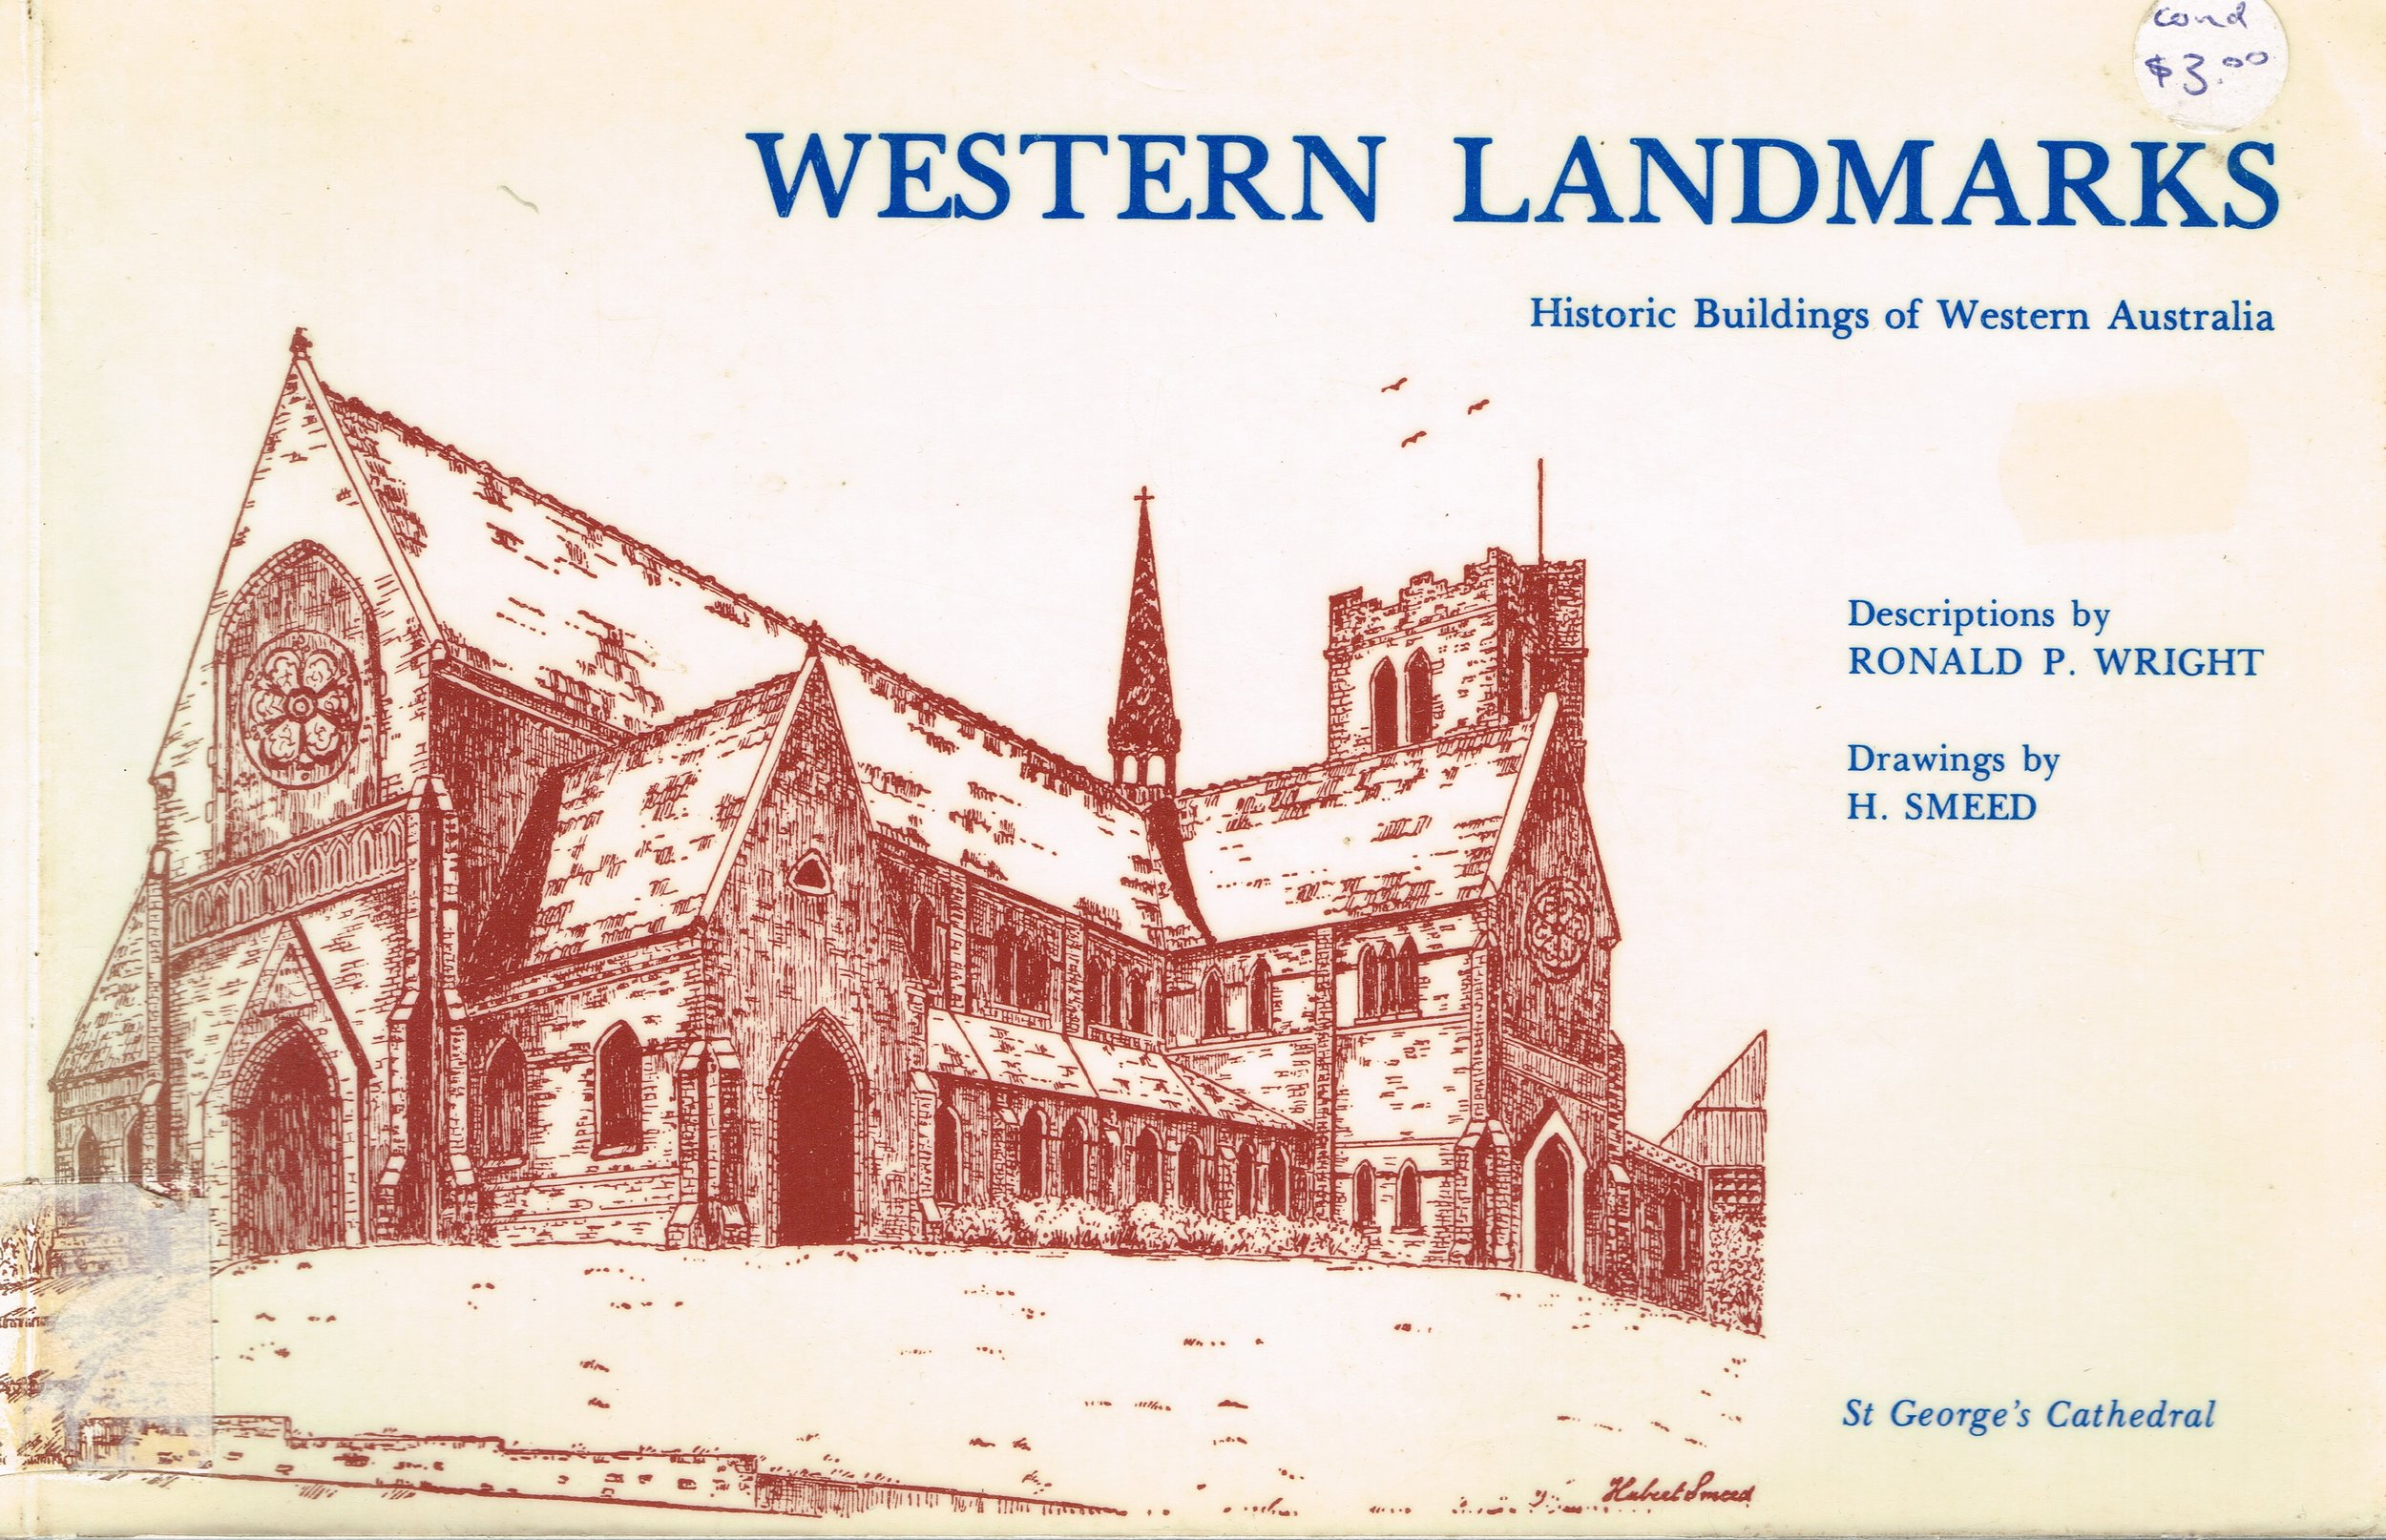 Western landmarks : Historic buildings of Western Australia   Descriptions by Ronald P. Wright, Drawings by H. Smeed